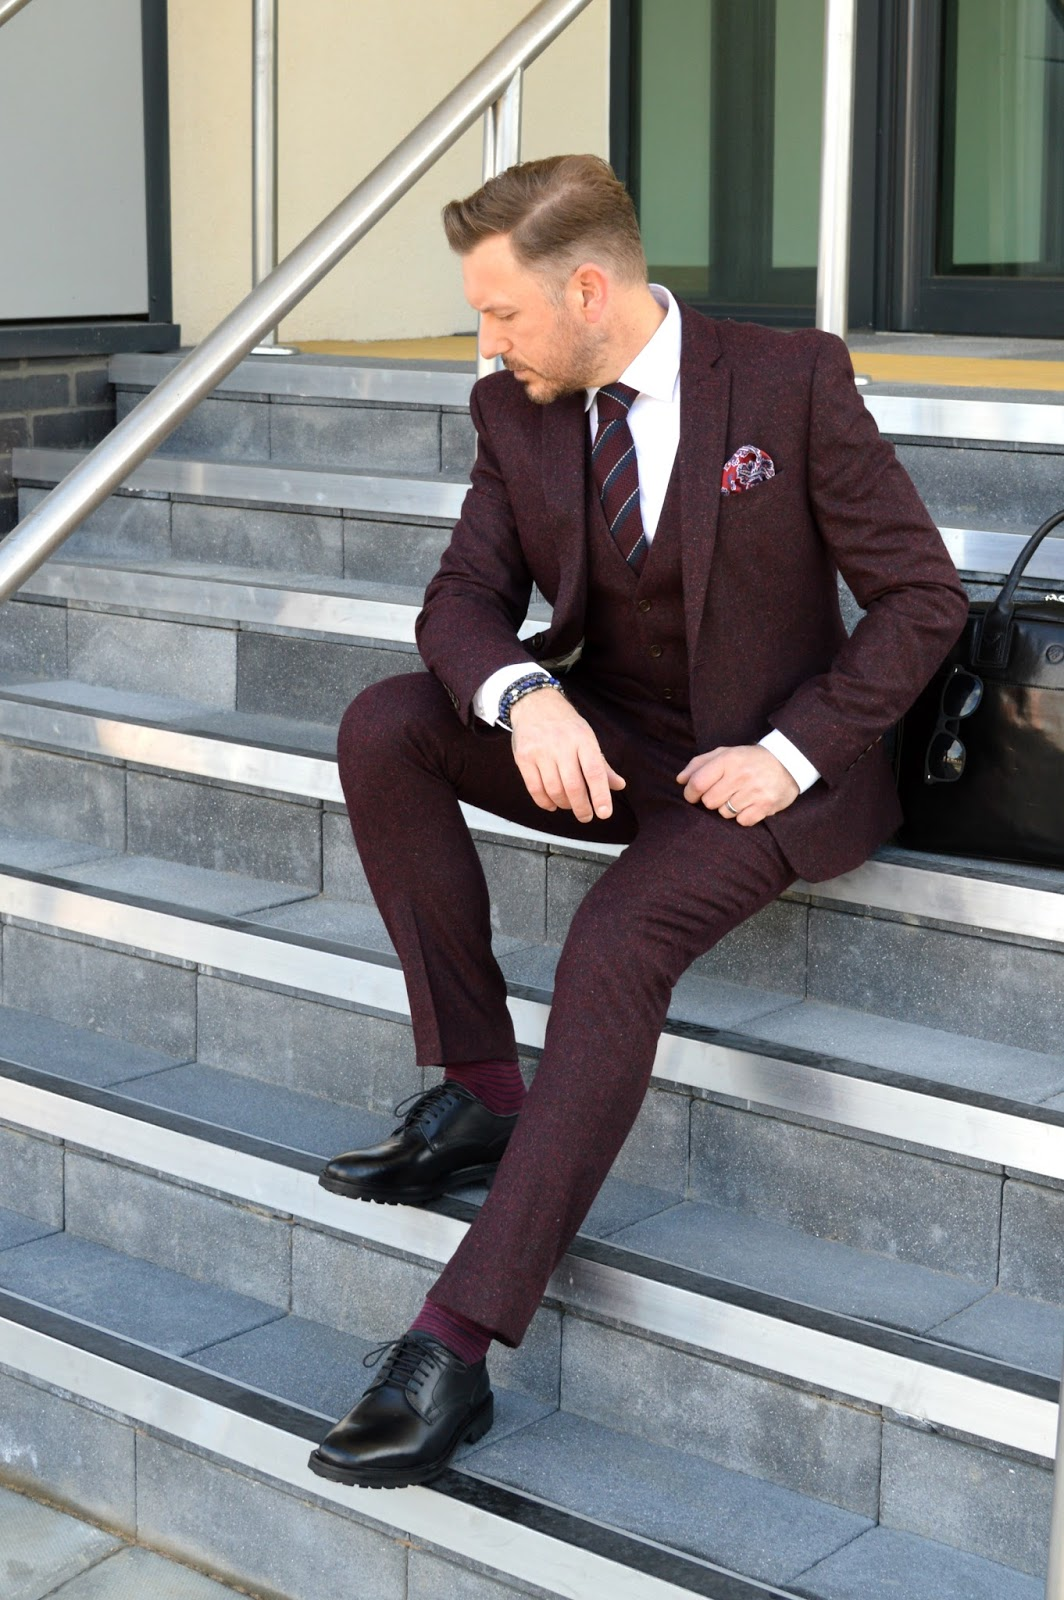 What I Wore Today - The Burgundy Nep Suit From Next - That Dapper Chap